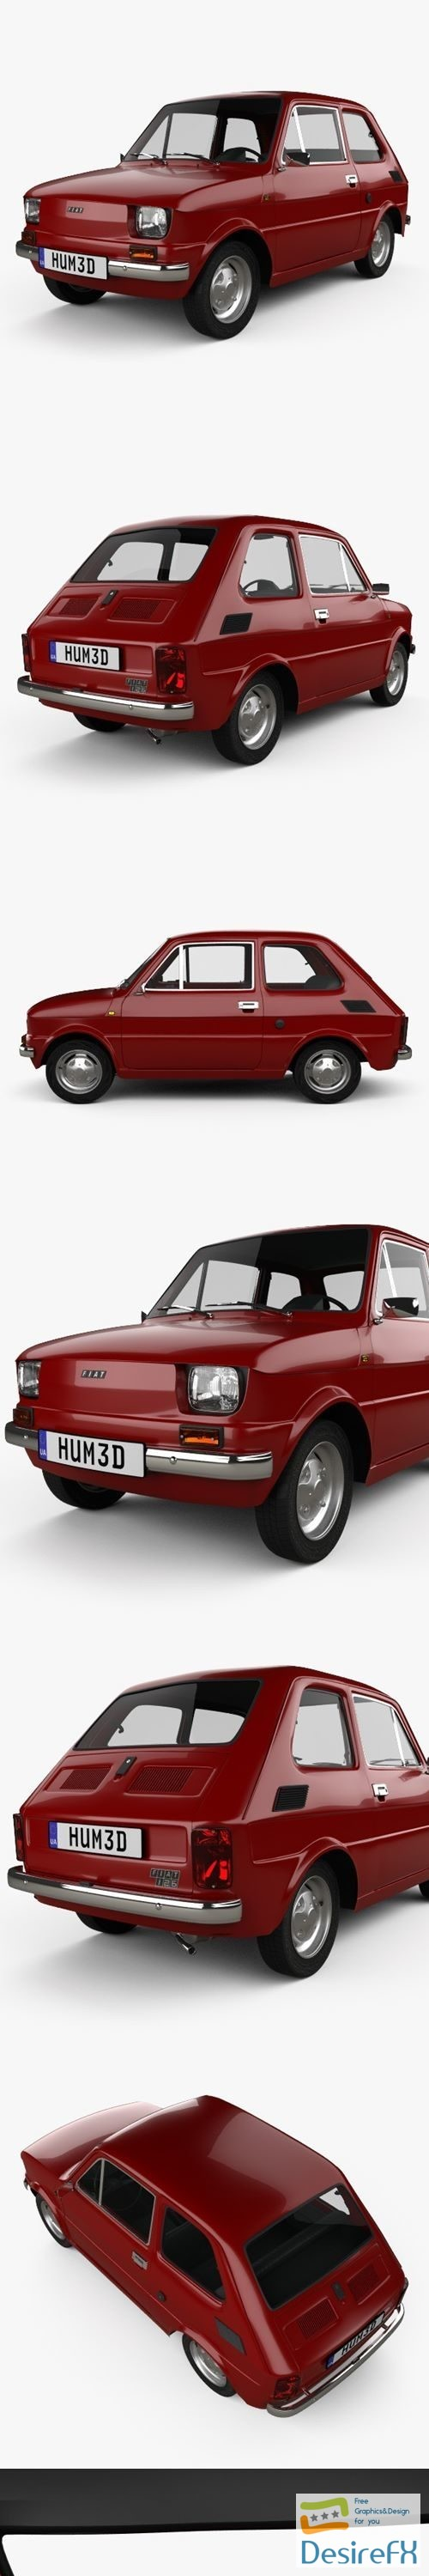 3d-models - Fiat 126 with HQ interior 1976 3D Model